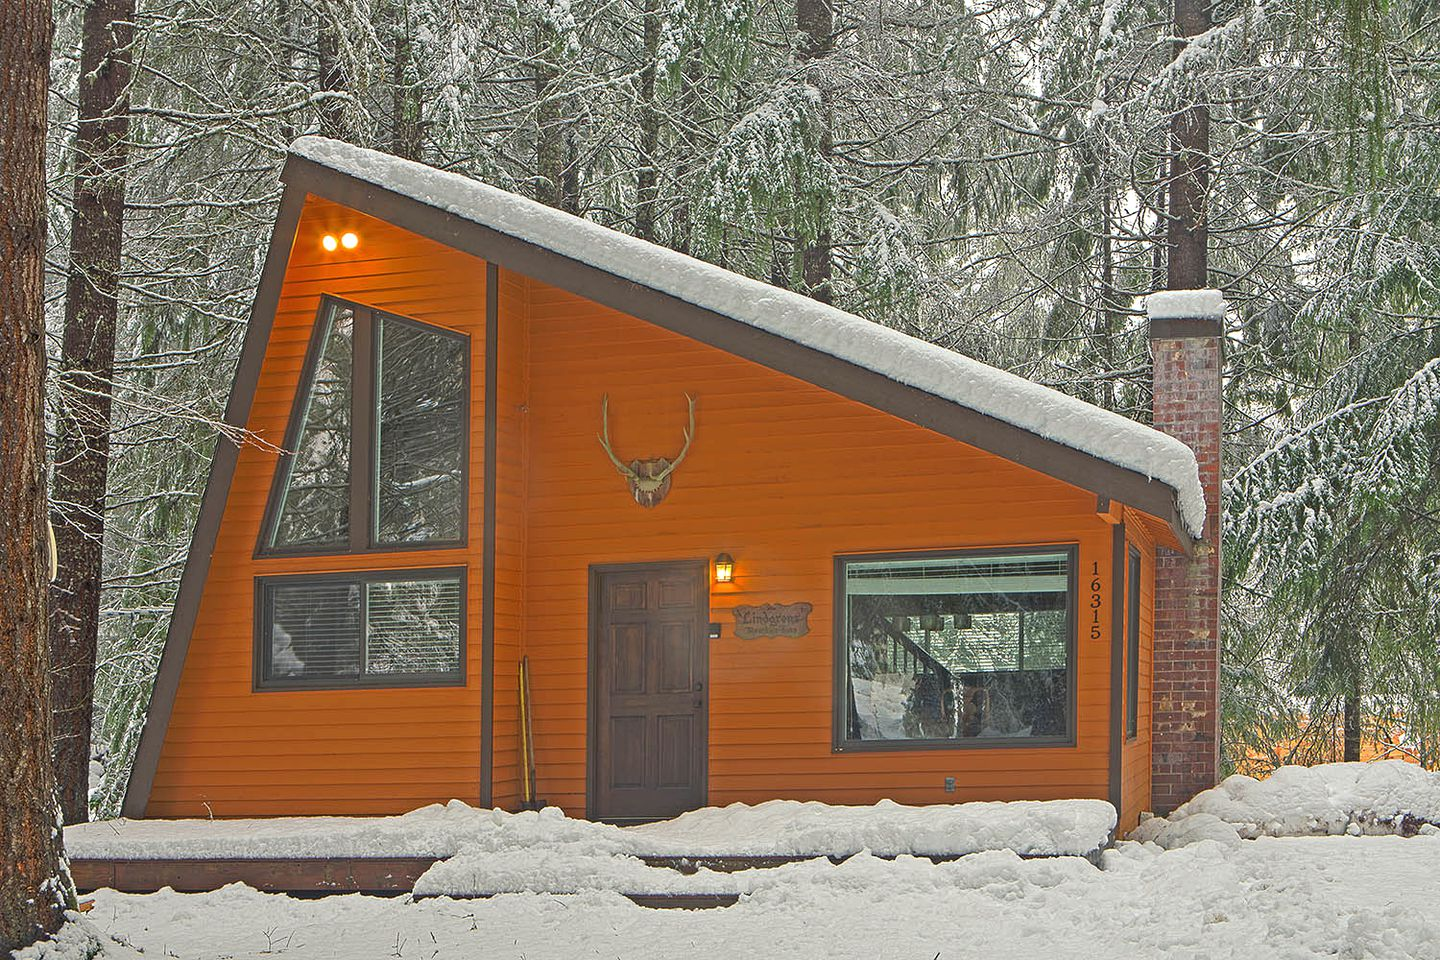 Orange exterior of one of the most unique cabins near Crystal Mountain